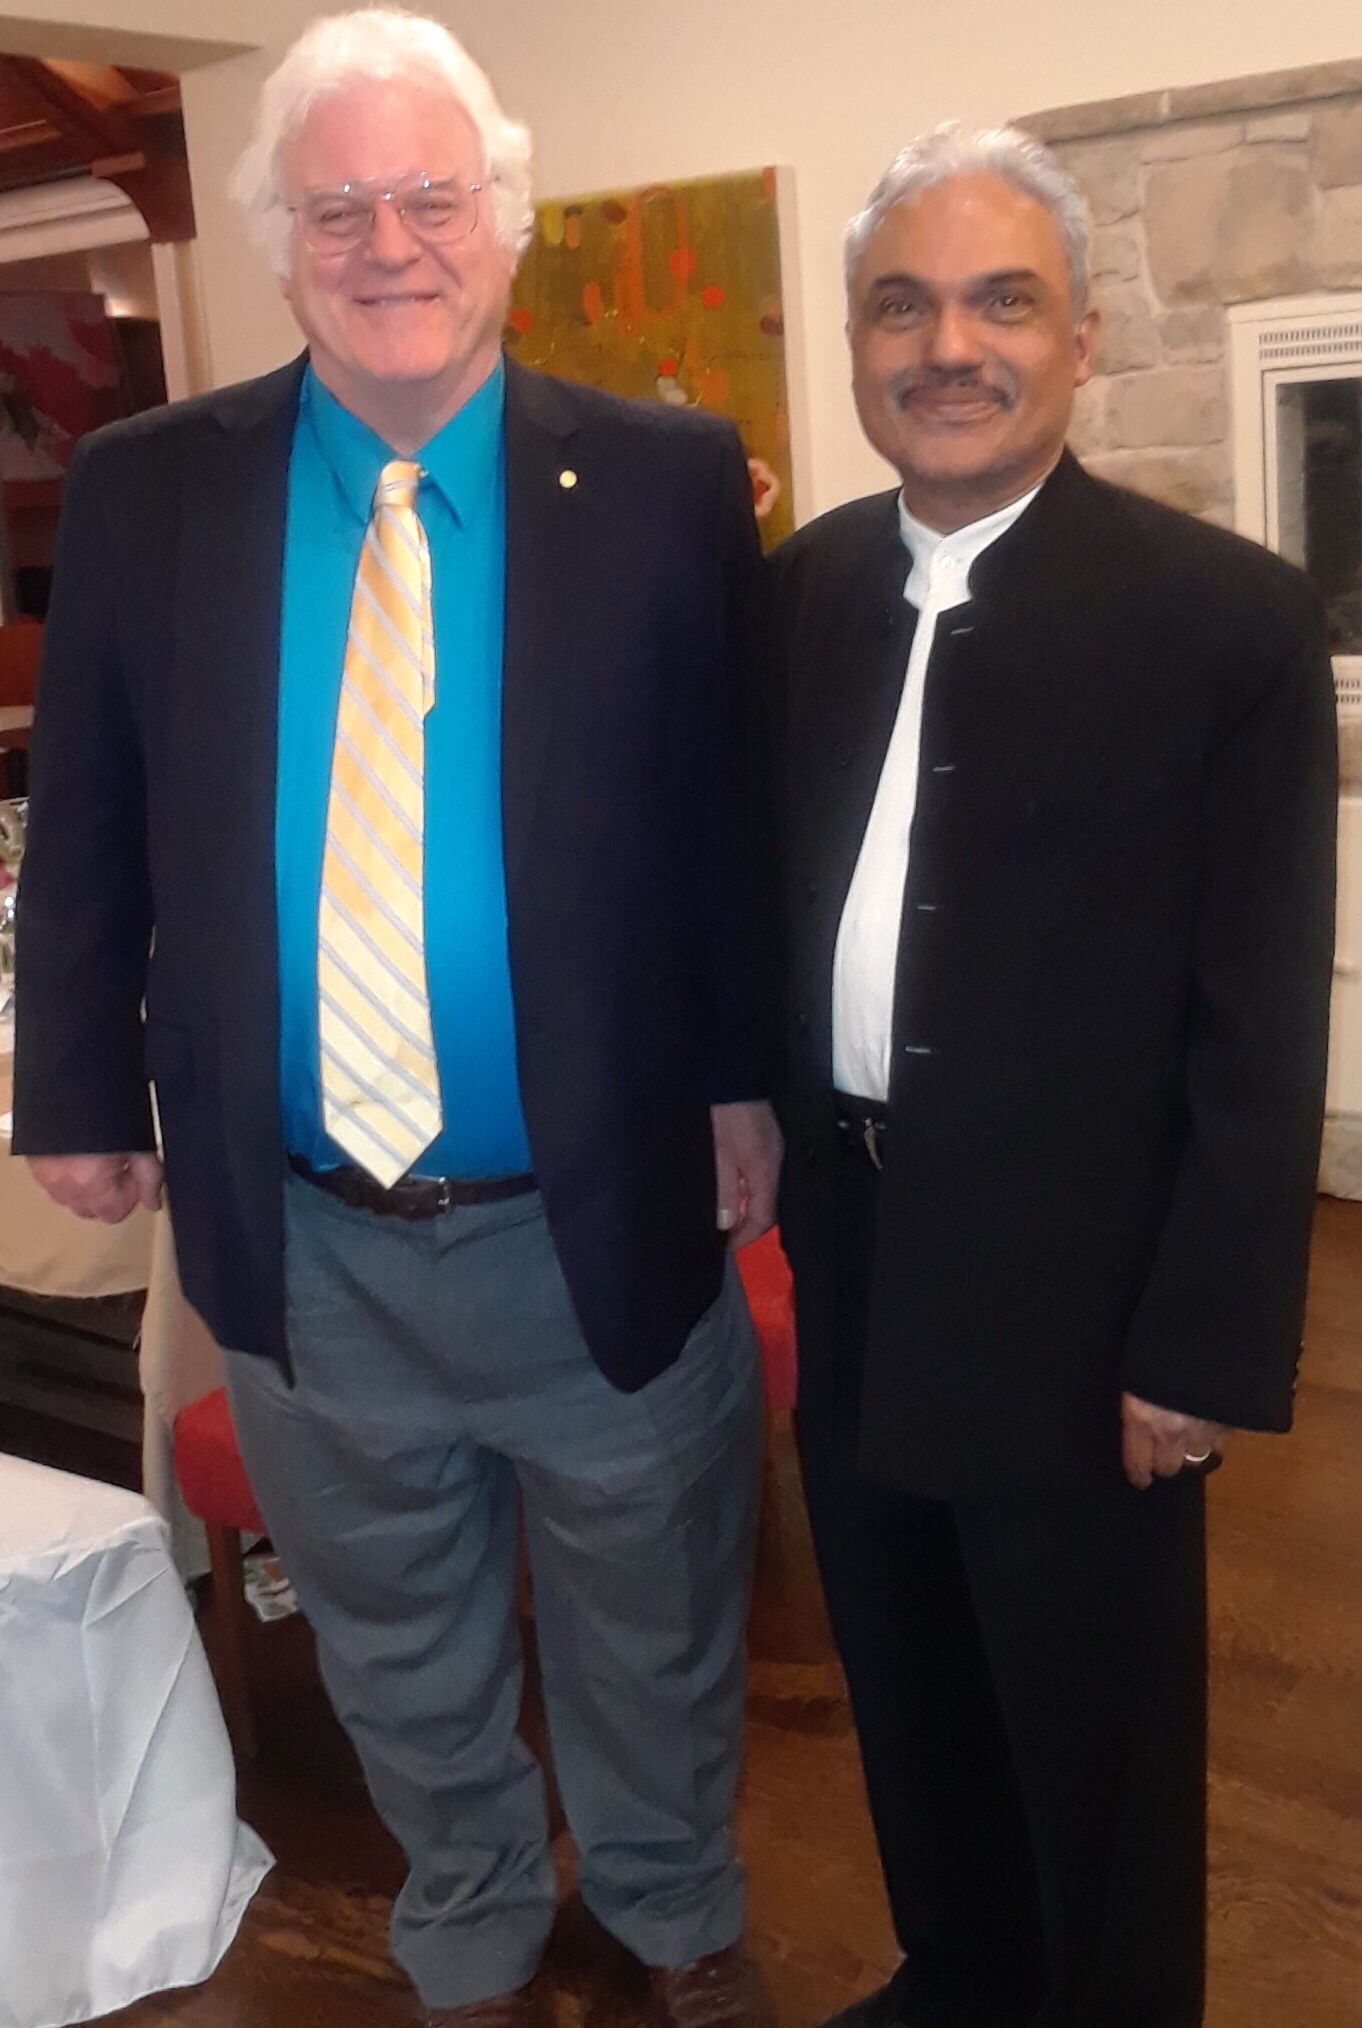 Photo: George Pinto with Nobel Prize winner Prof. Robert Laughlin (Physics, 1998)